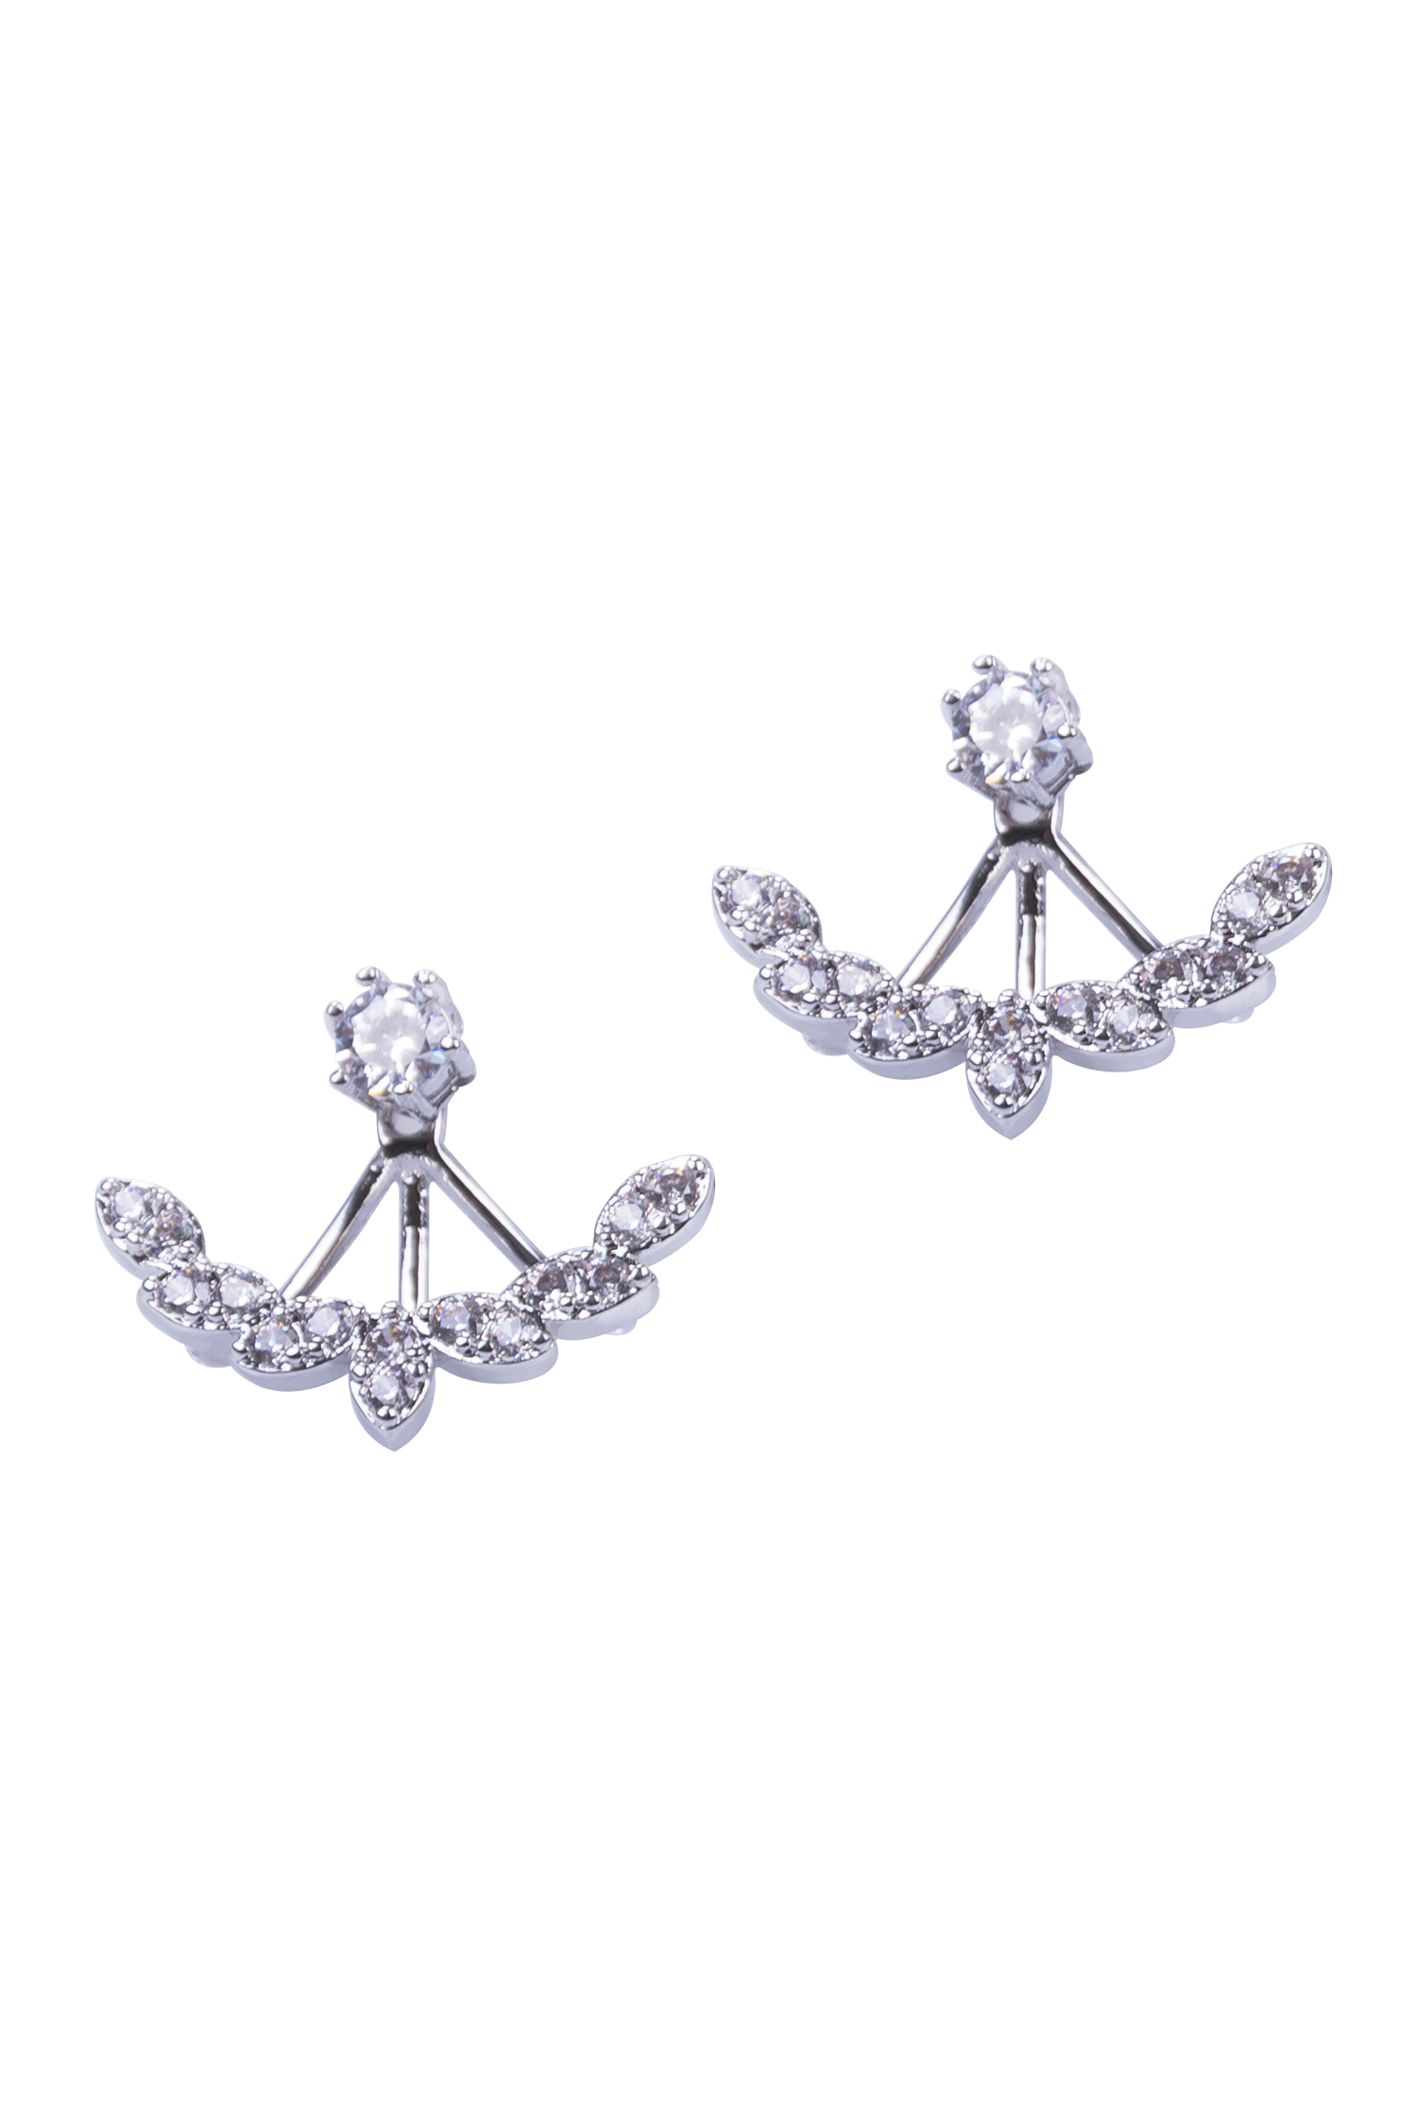 Silver Olive Leaf With Zircons Two Sided Earings Women Fashion . Fashion Jewlery.   Made of Rhodium With Nickel.  sku: 18022